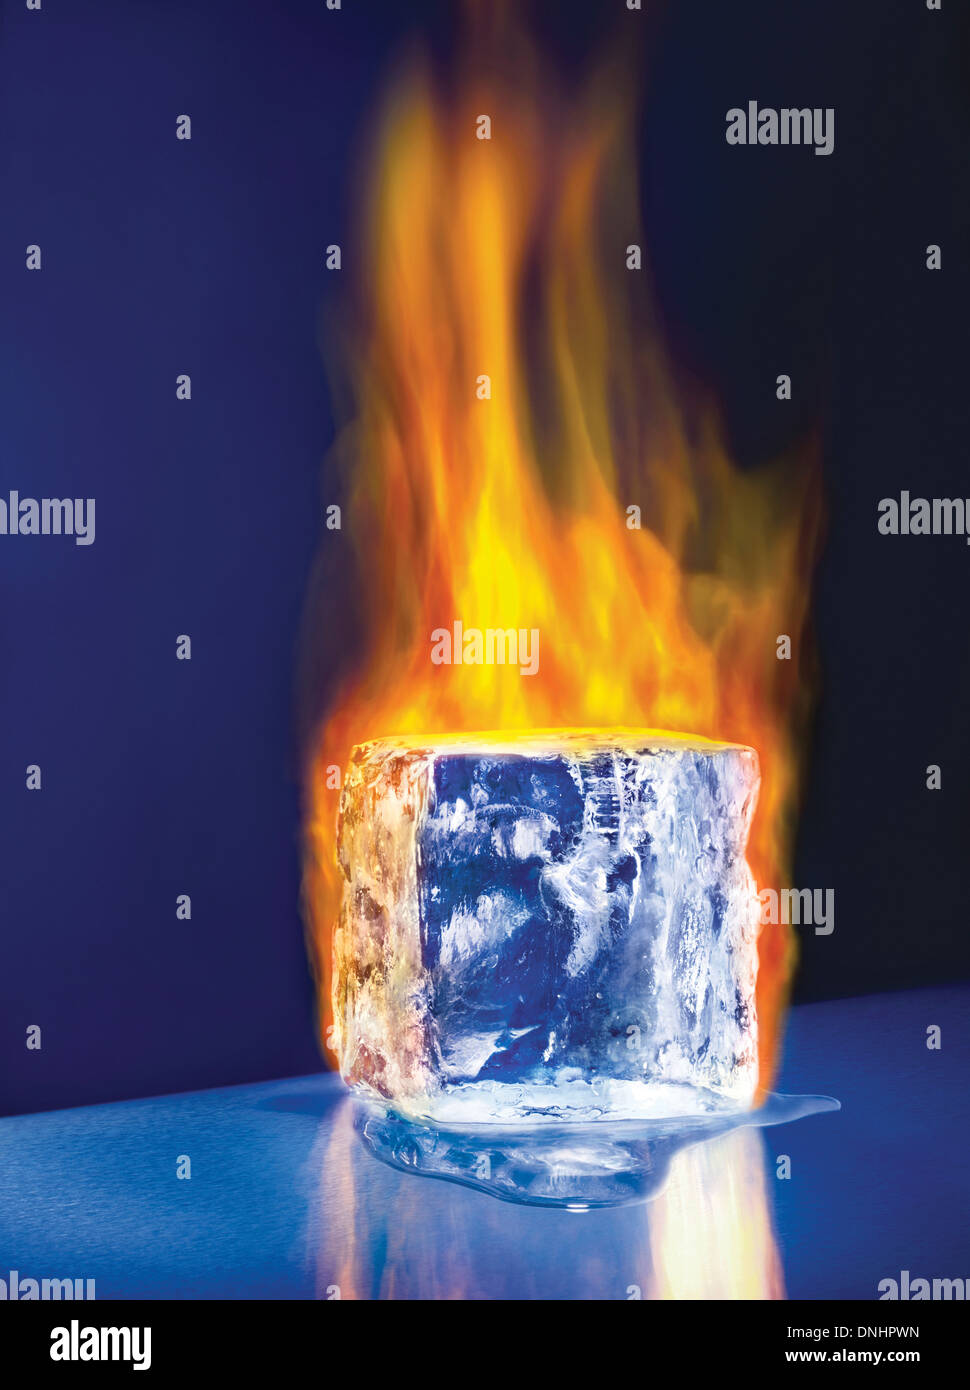 Un grand bloc de glace fondante cube sur l'incendie. Photo Stock